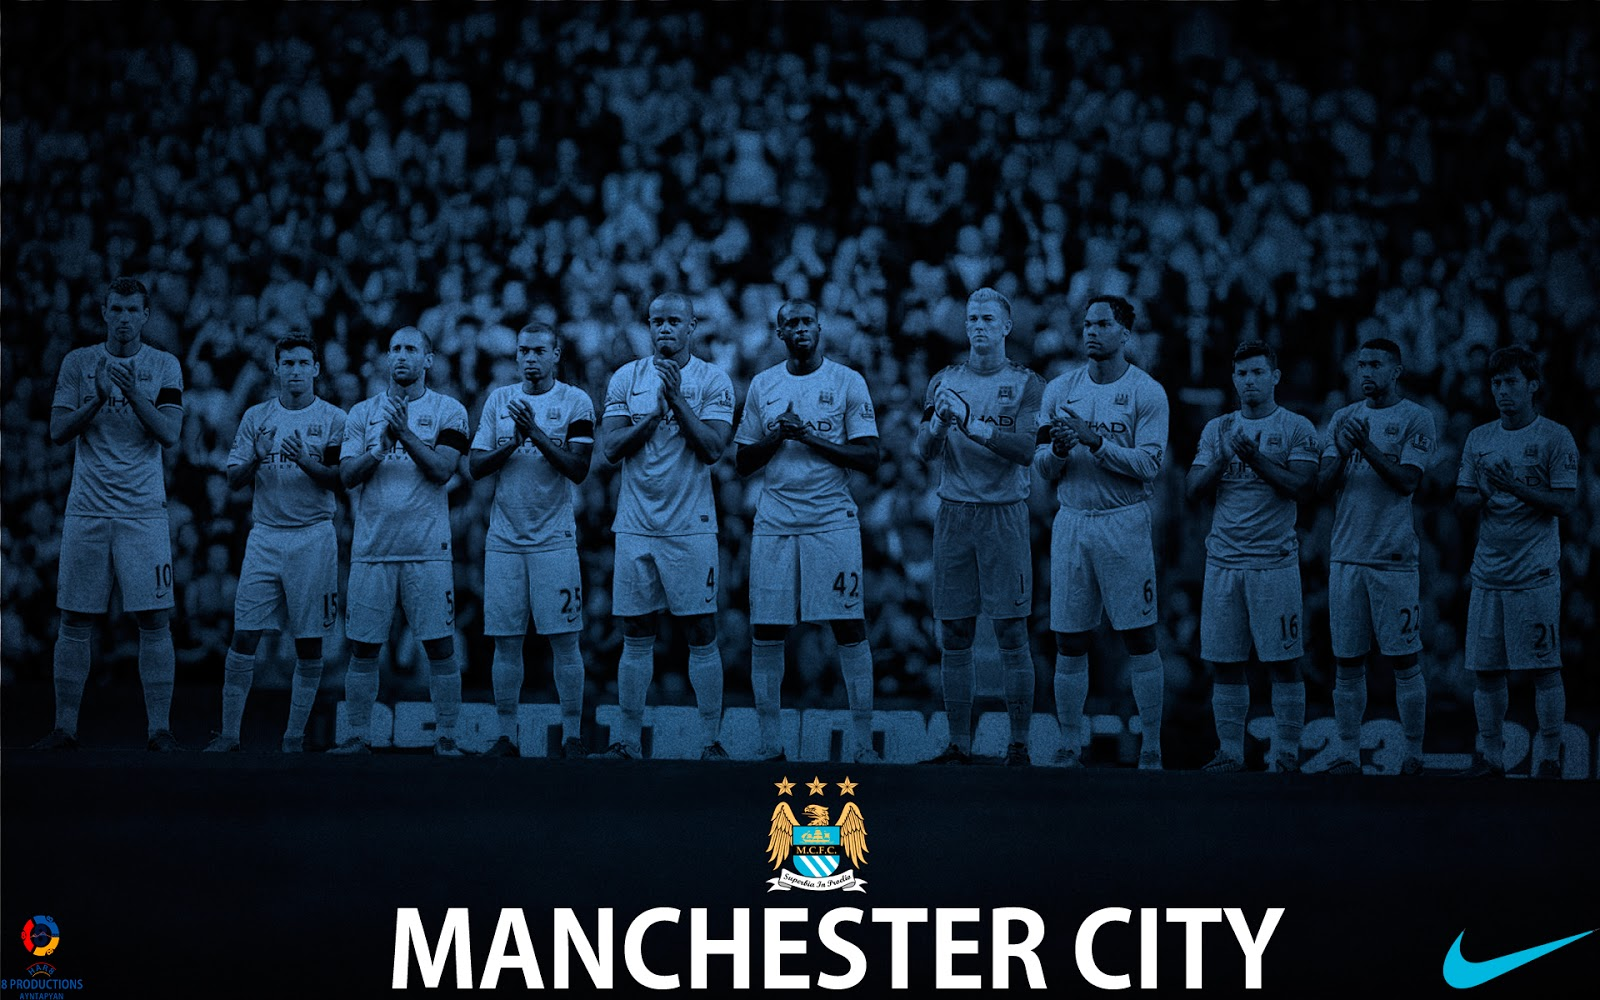 Productions Manchester City 201314 wallpaper 1600x1000